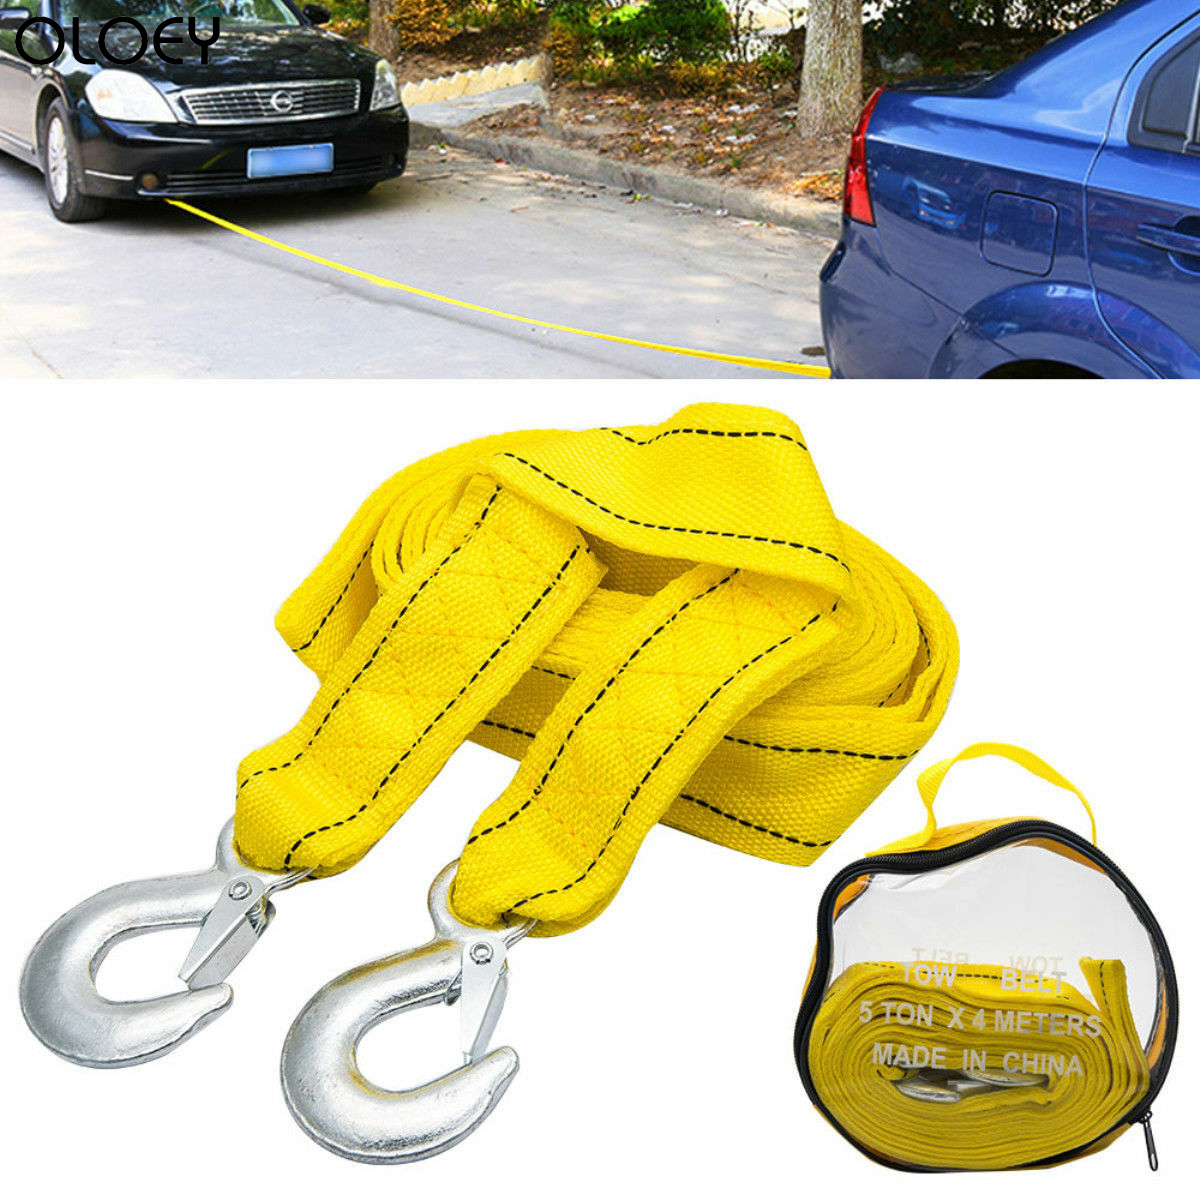 towing belt for vehicles up to 2 tonnes AA Strap-Style Tow Rope